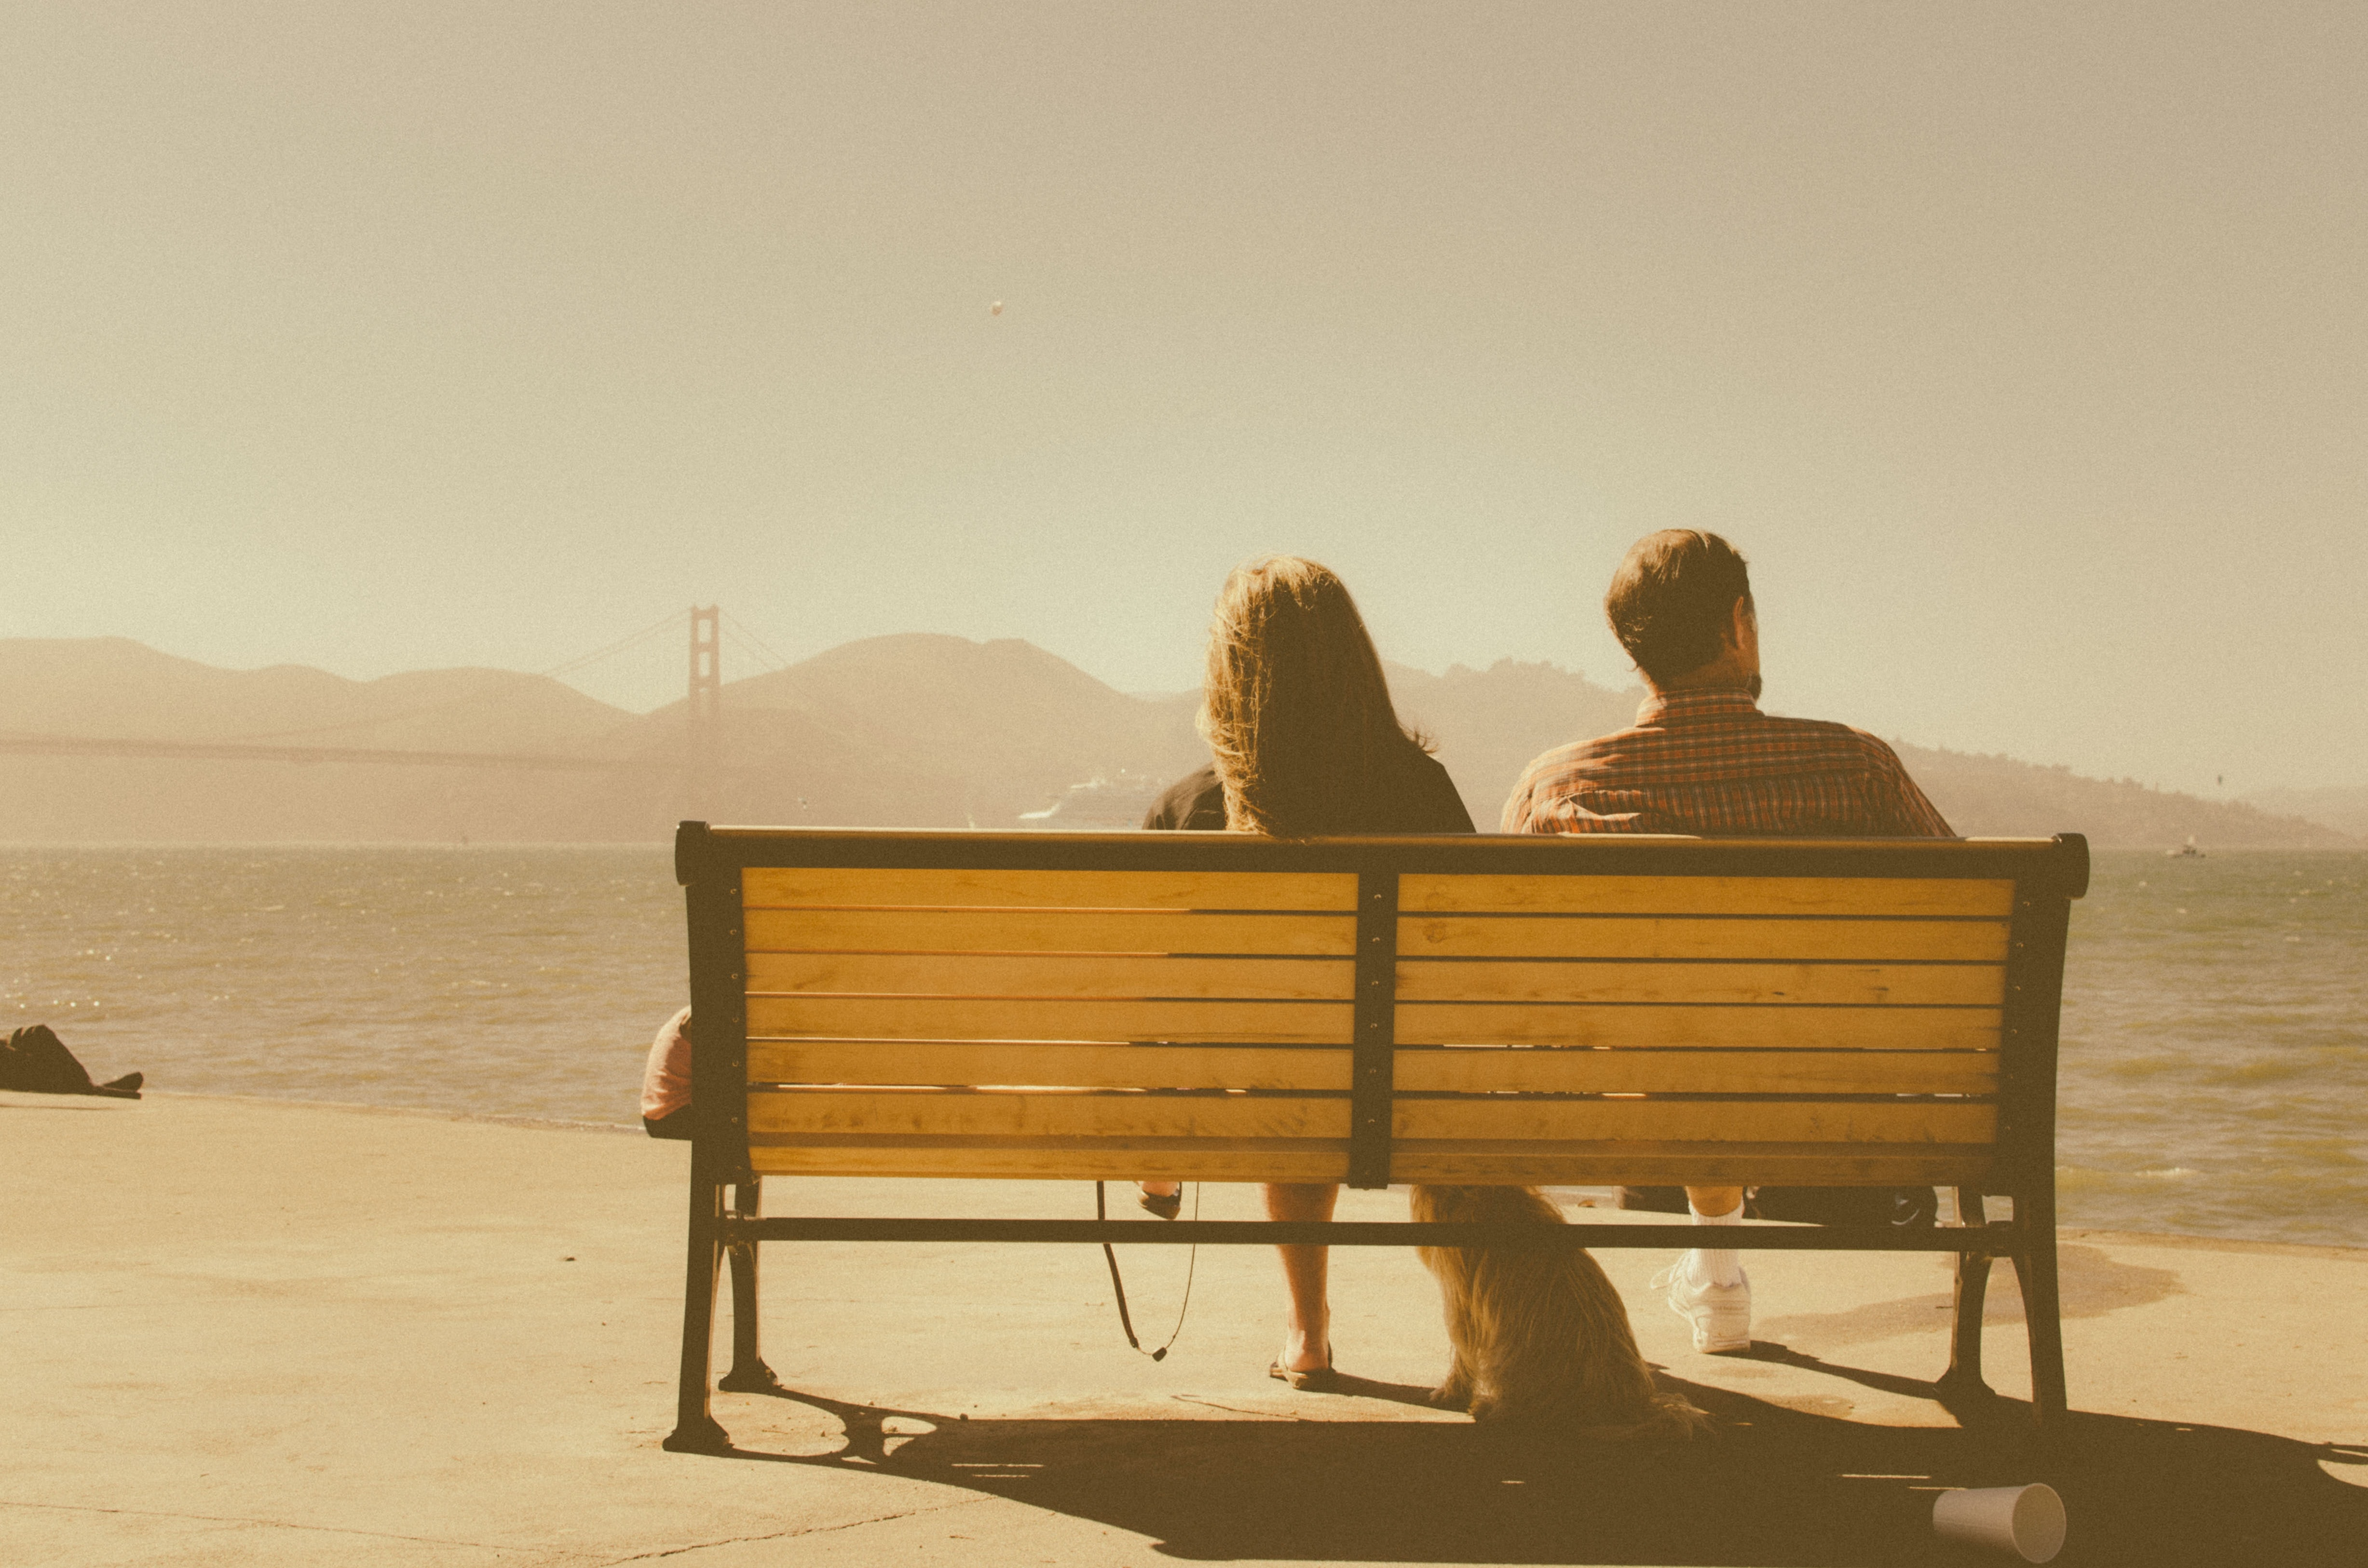 5 signs your partner doesnt care about you enough according to an expert